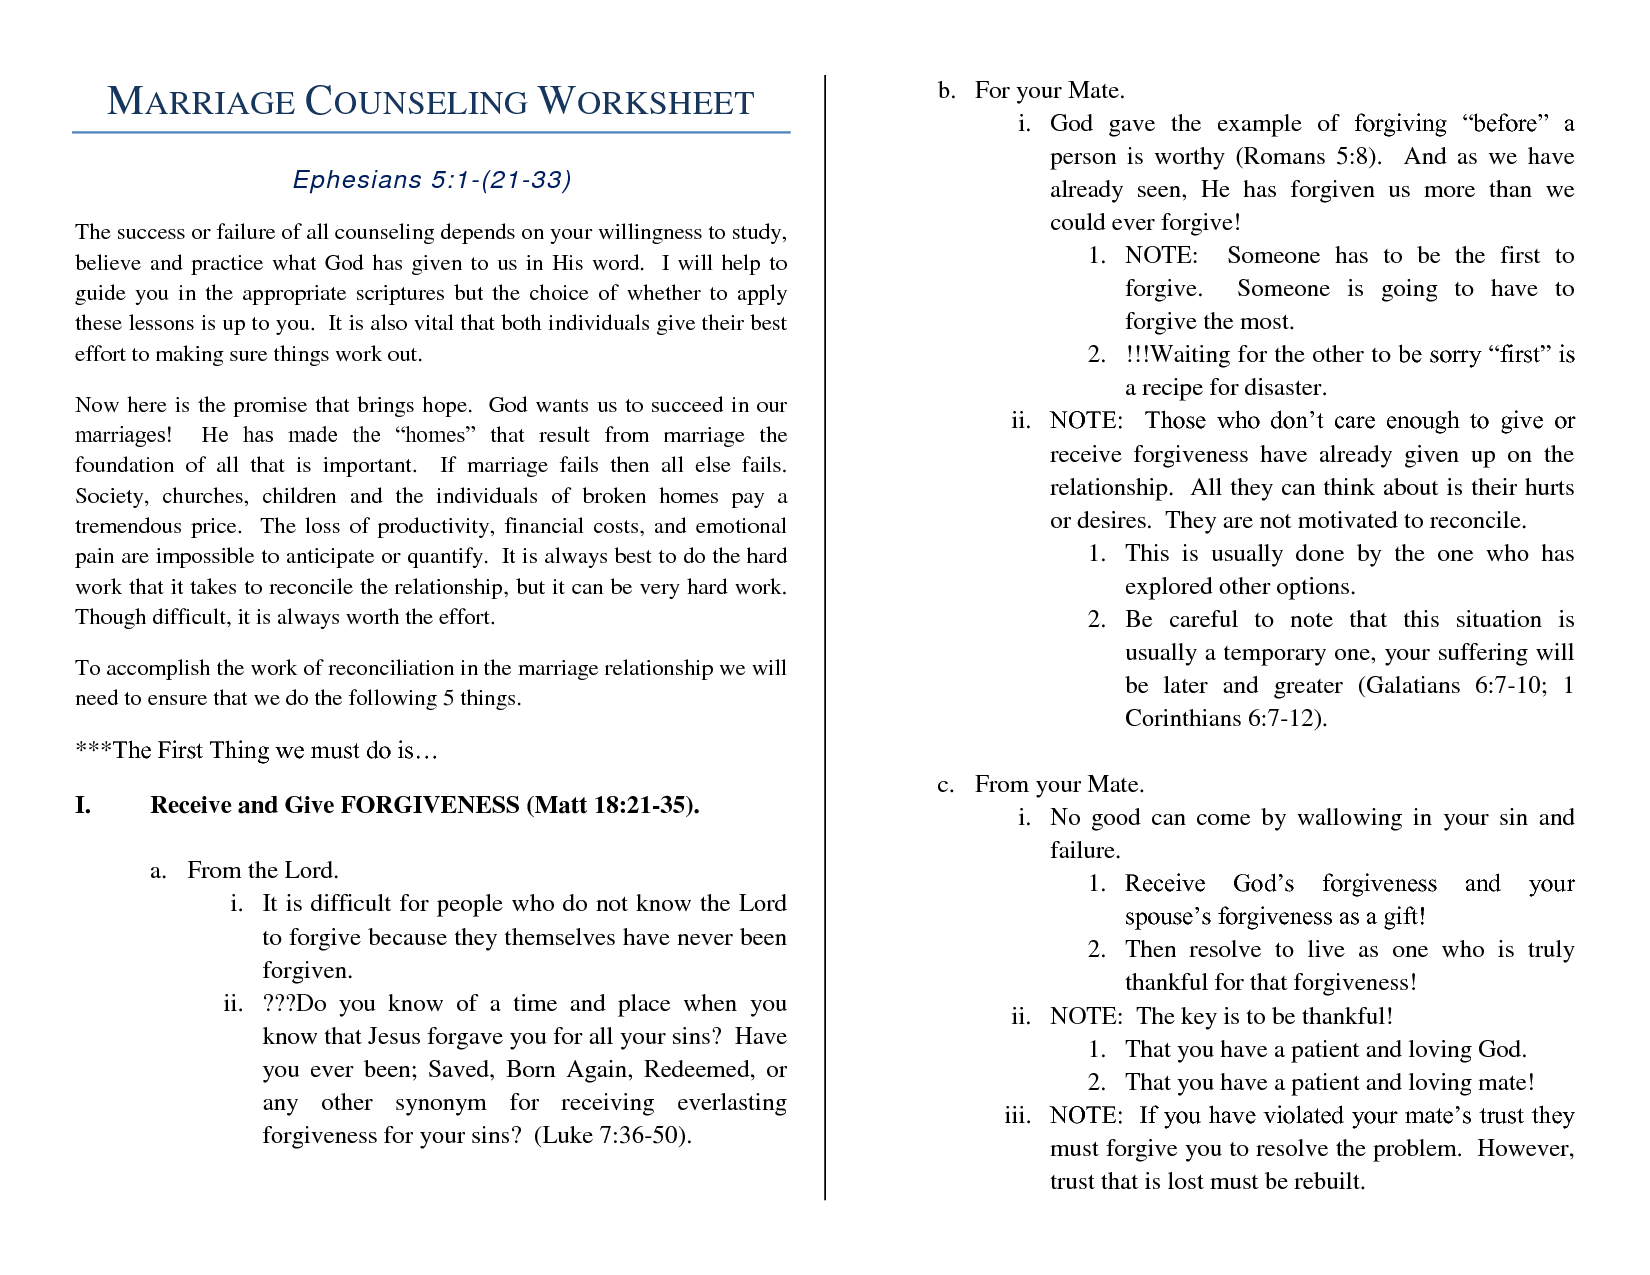 Worksheets Couples Therapy Worksheets marriagehelpworksheet marriage counseling worksheet worksheet